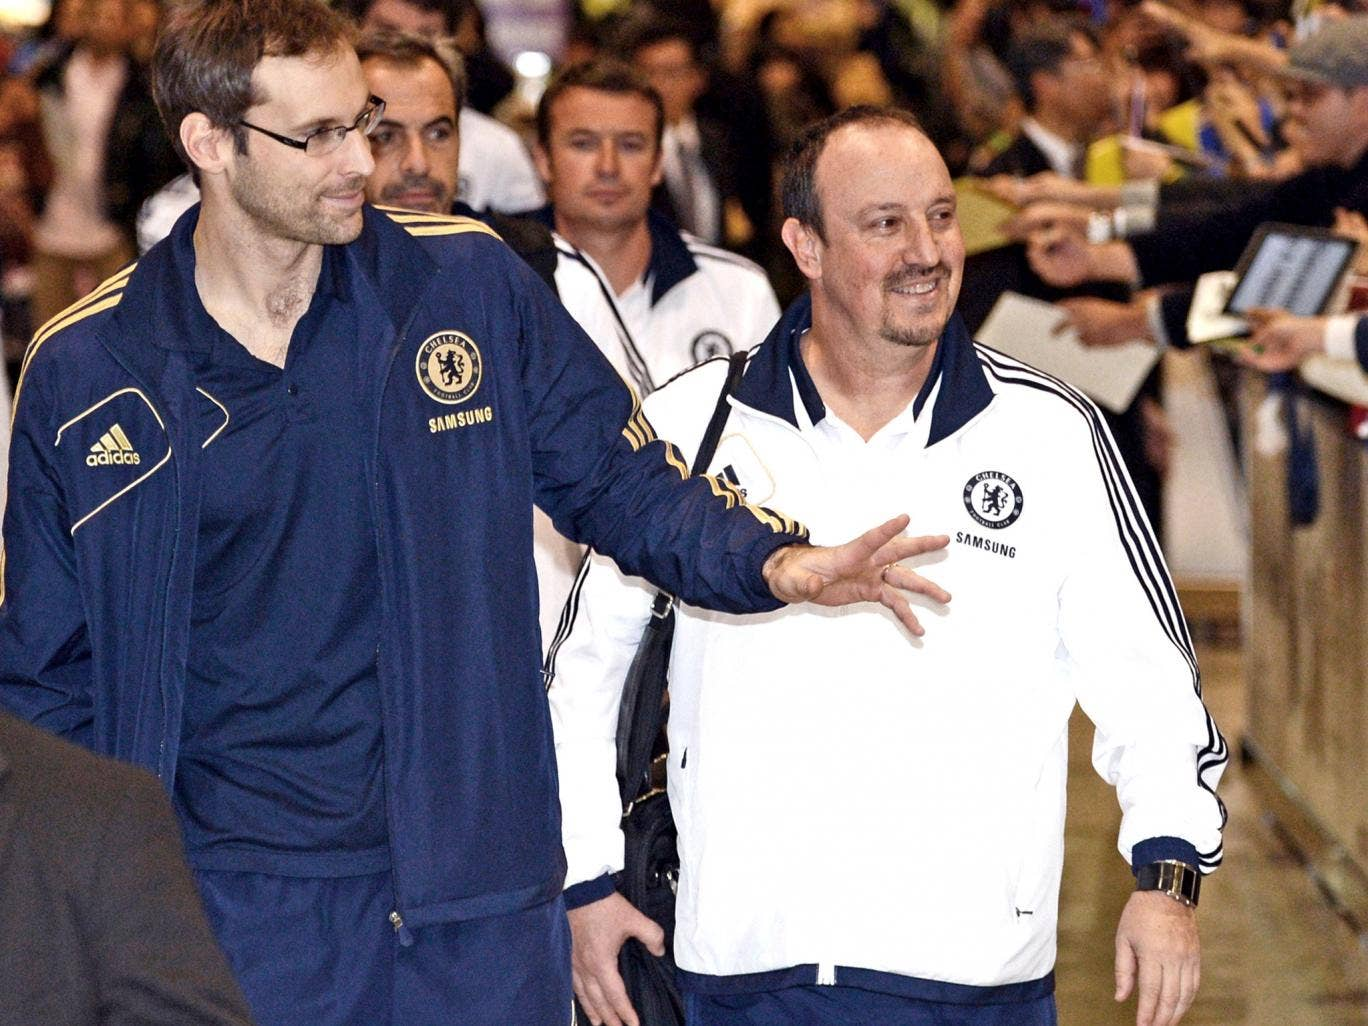 Rafa Benitez and Chelsea were greeted by adoring fans on arrival in Japan